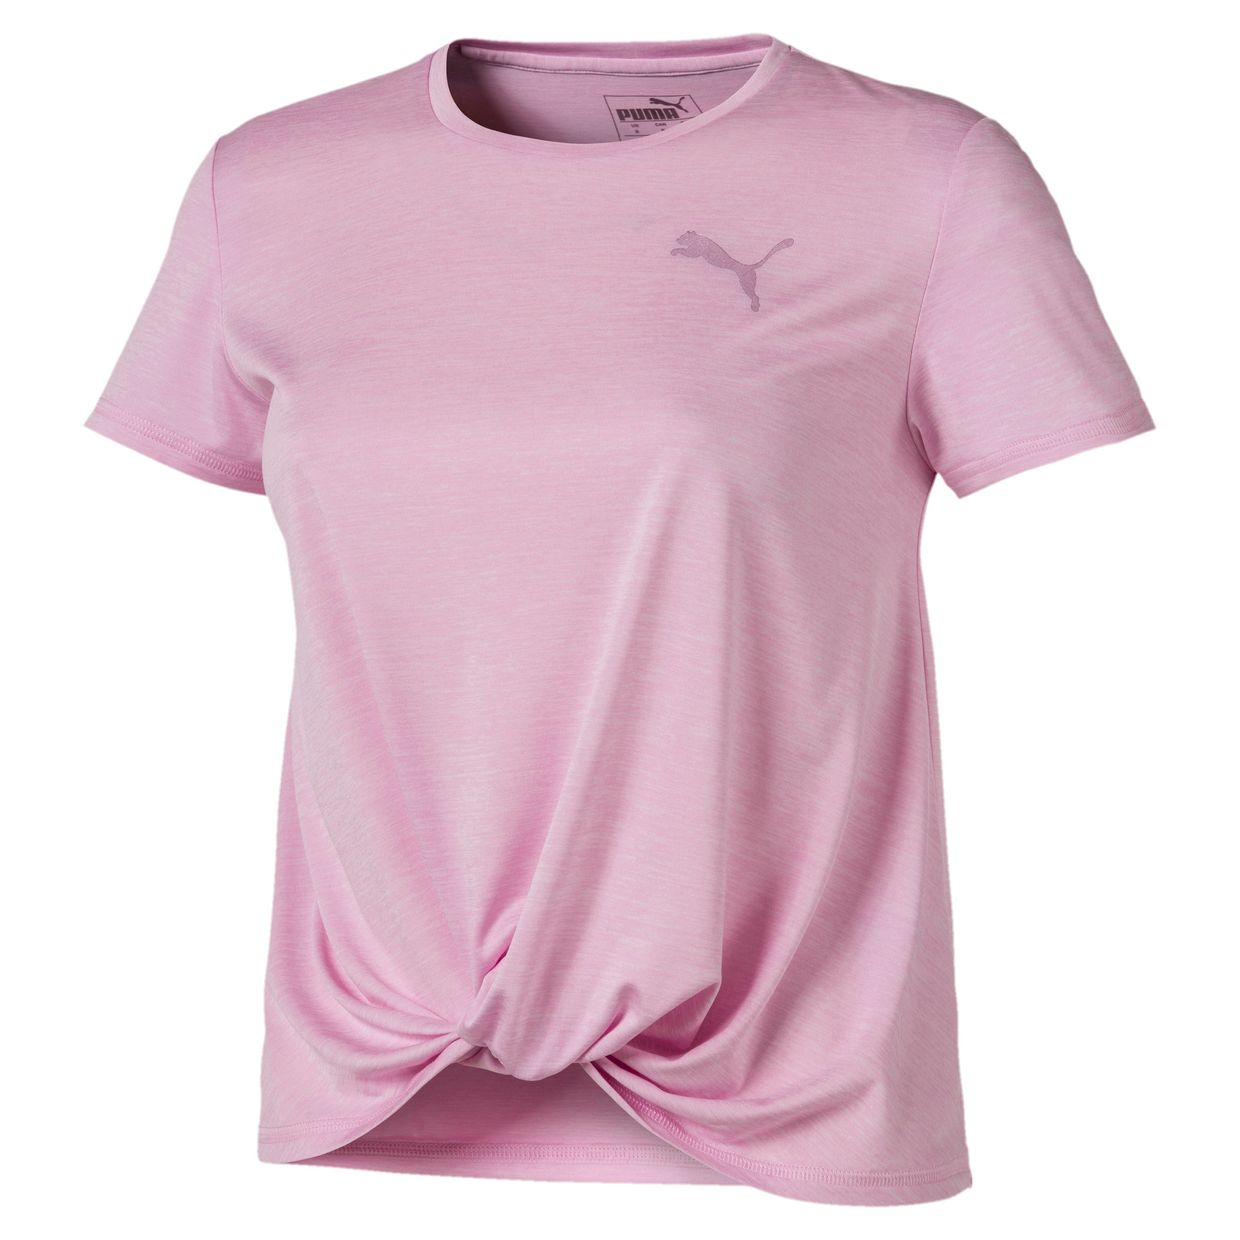 T-shirt Turn It Up, Puma, €35